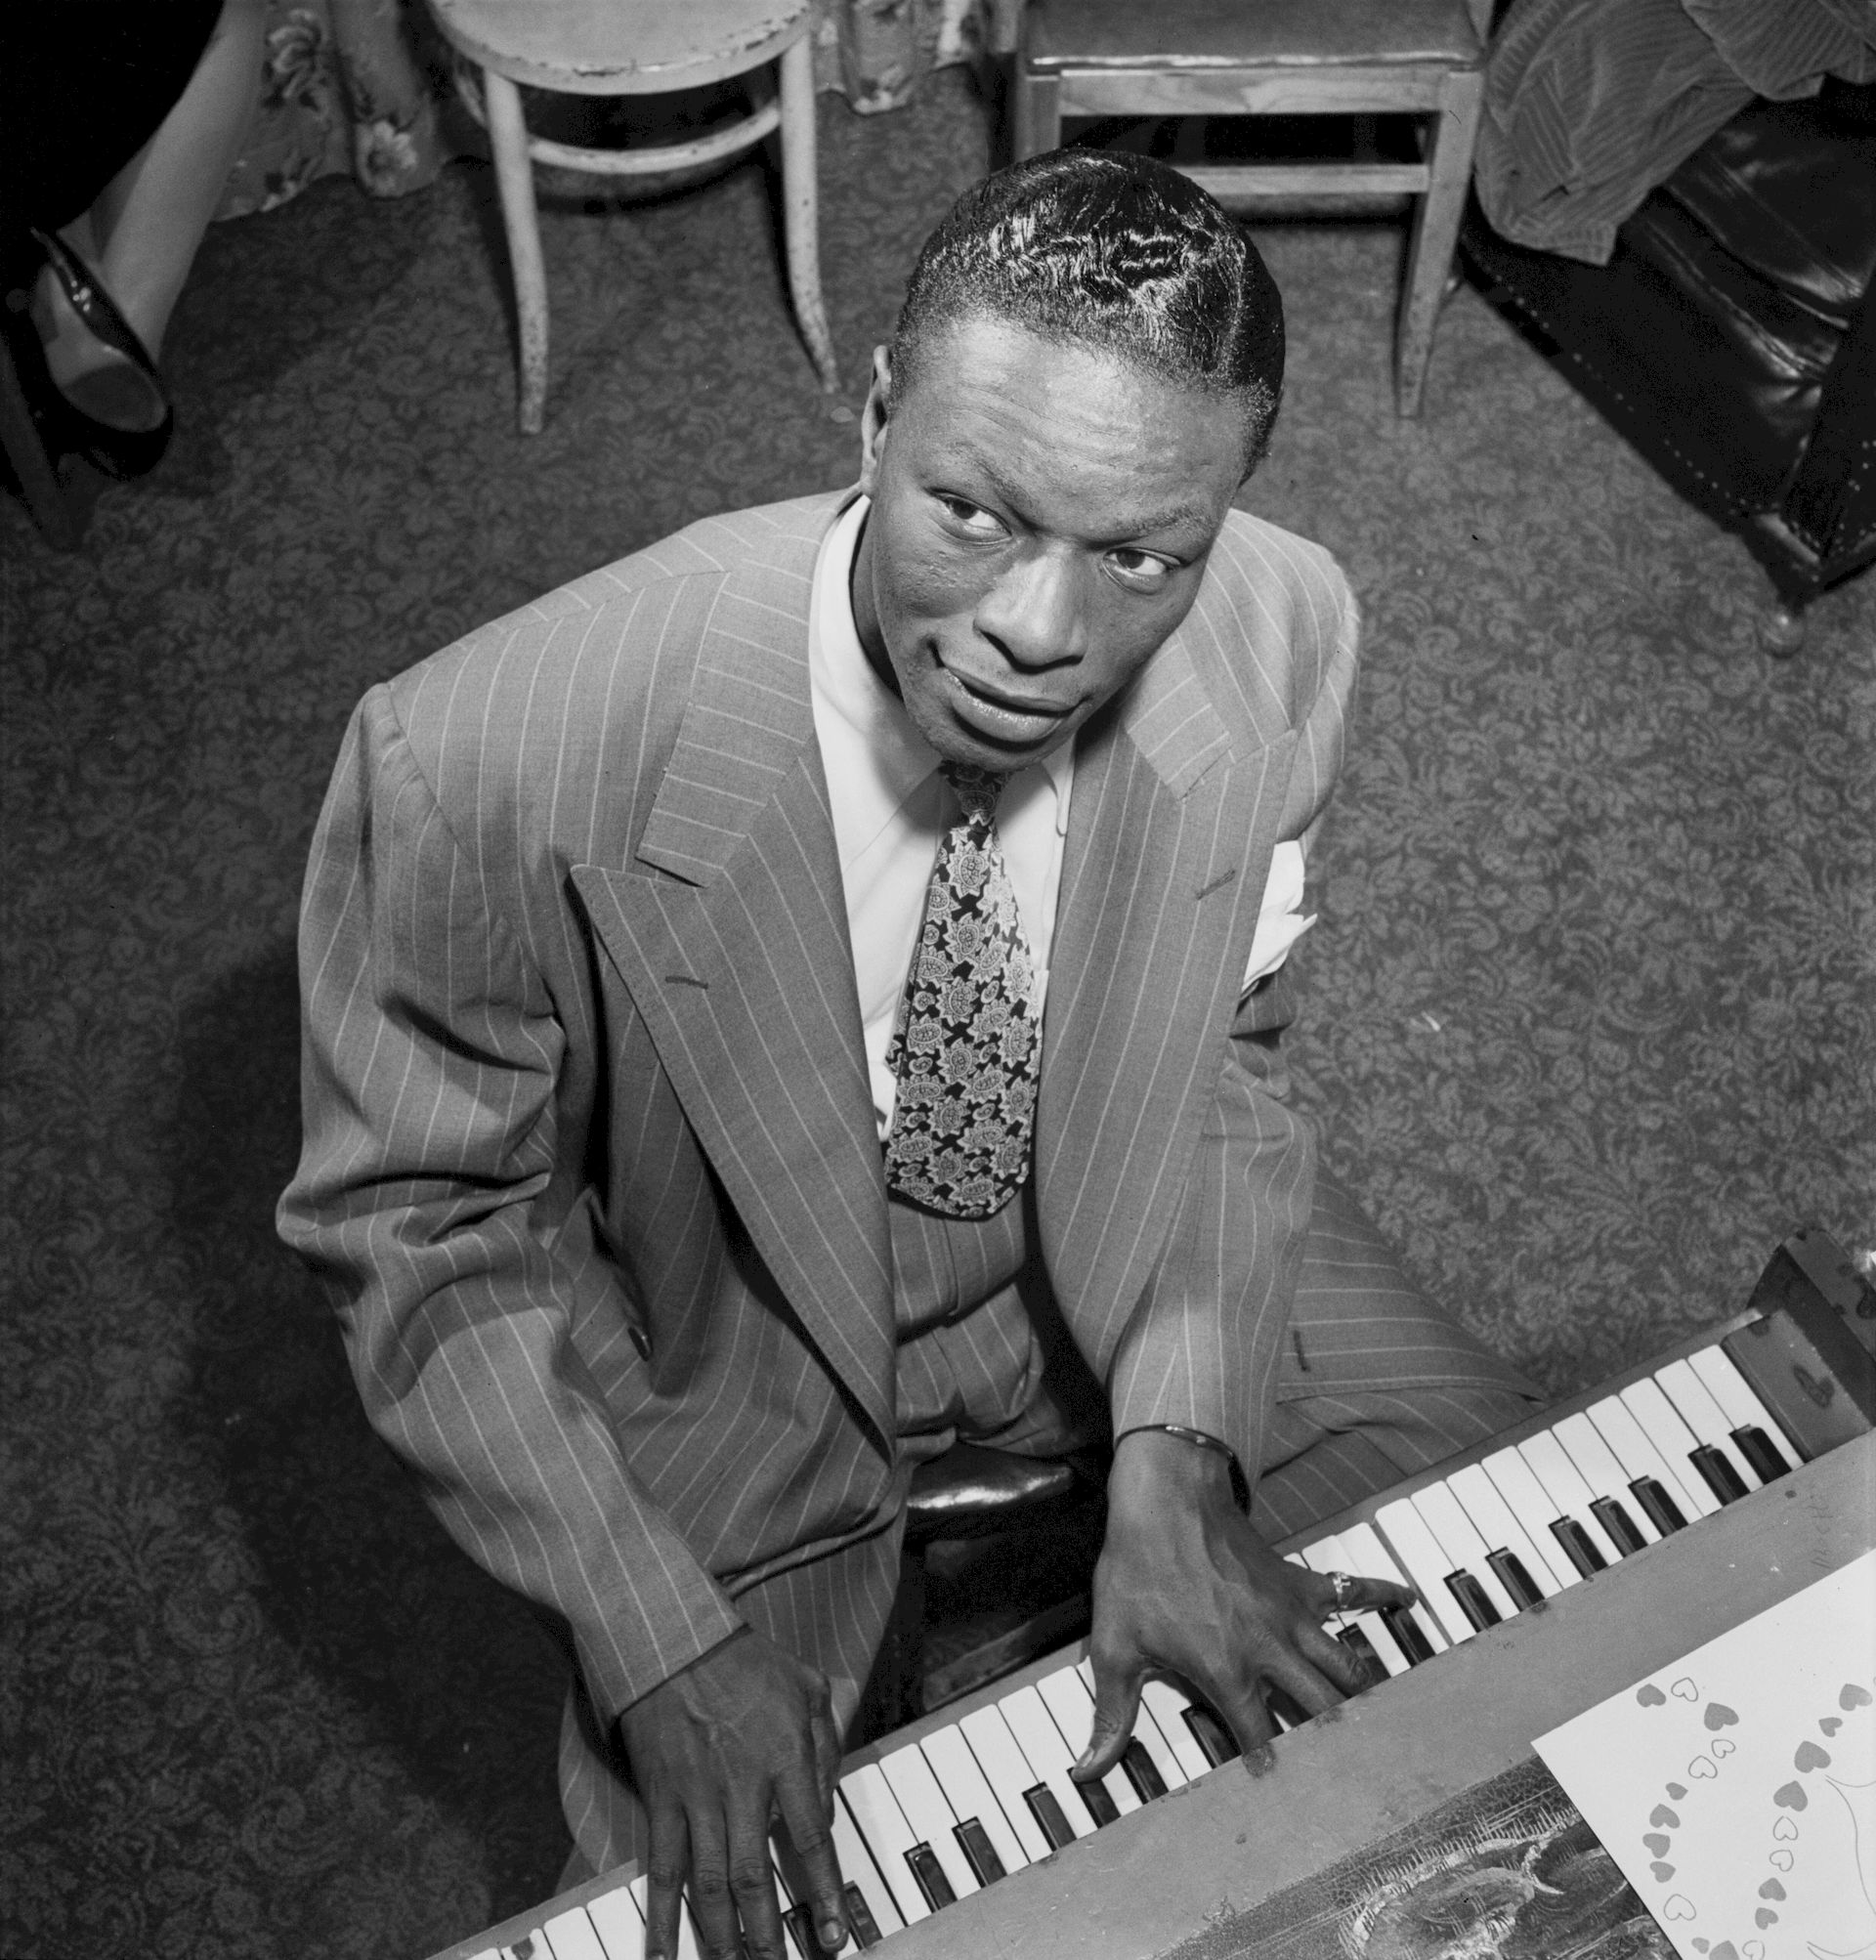 Photo of Nat King Cole: American singer and jazz pianist